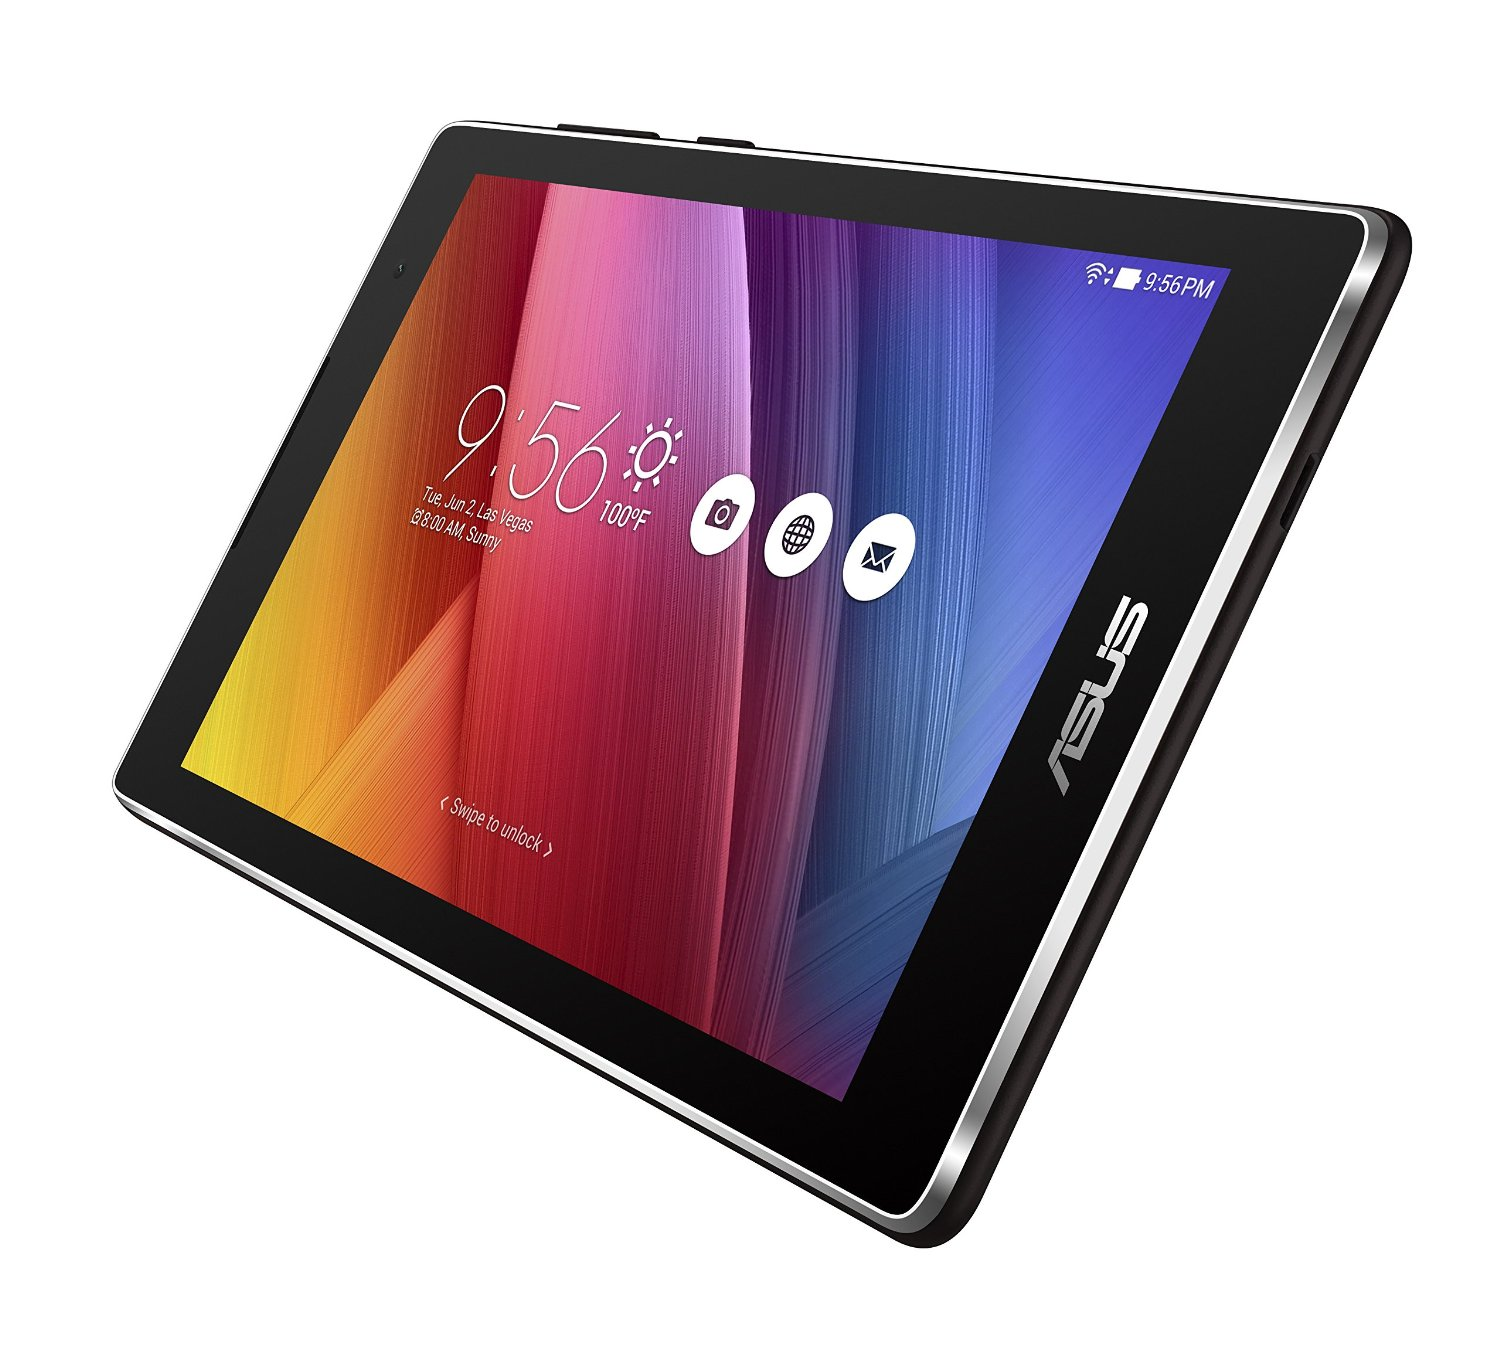 bon plan tablette asus zenpad 7 pouces 8 go ssd 92. Black Bedroom Furniture Sets. Home Design Ideas